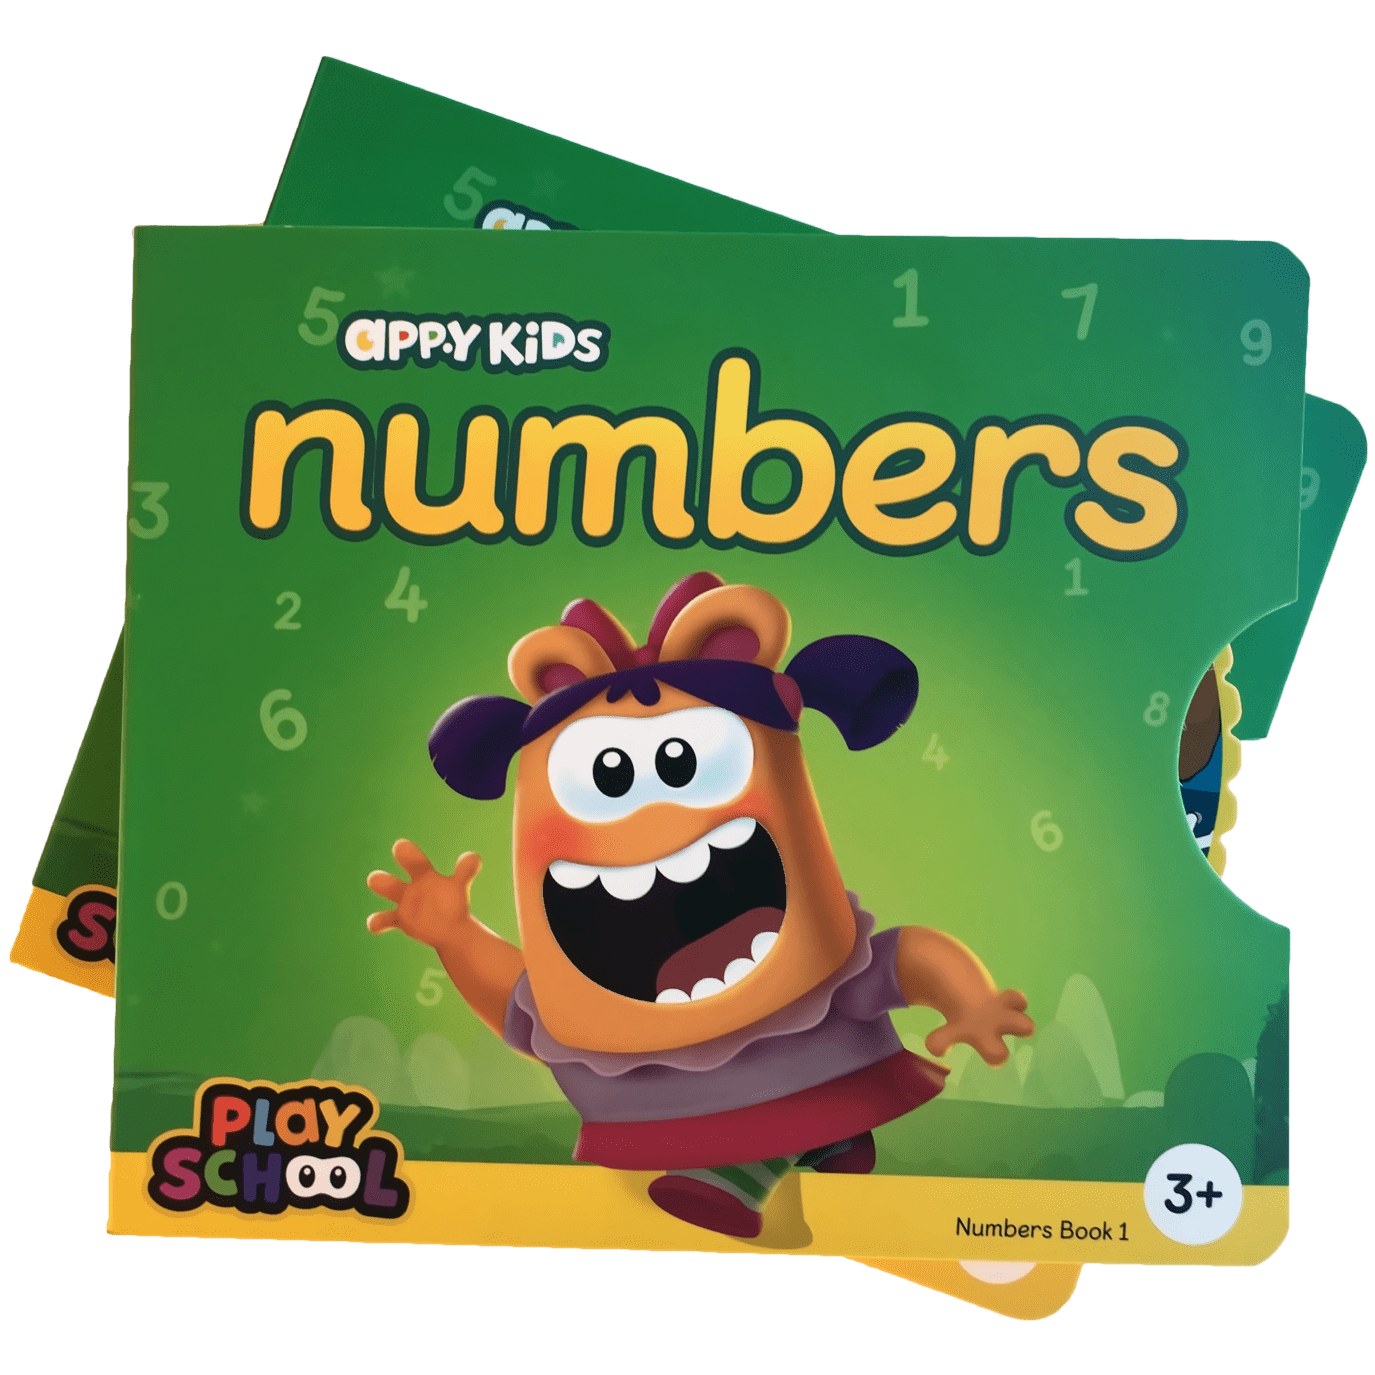 AppyKids-Numbers-Cover-copy-pngq.png